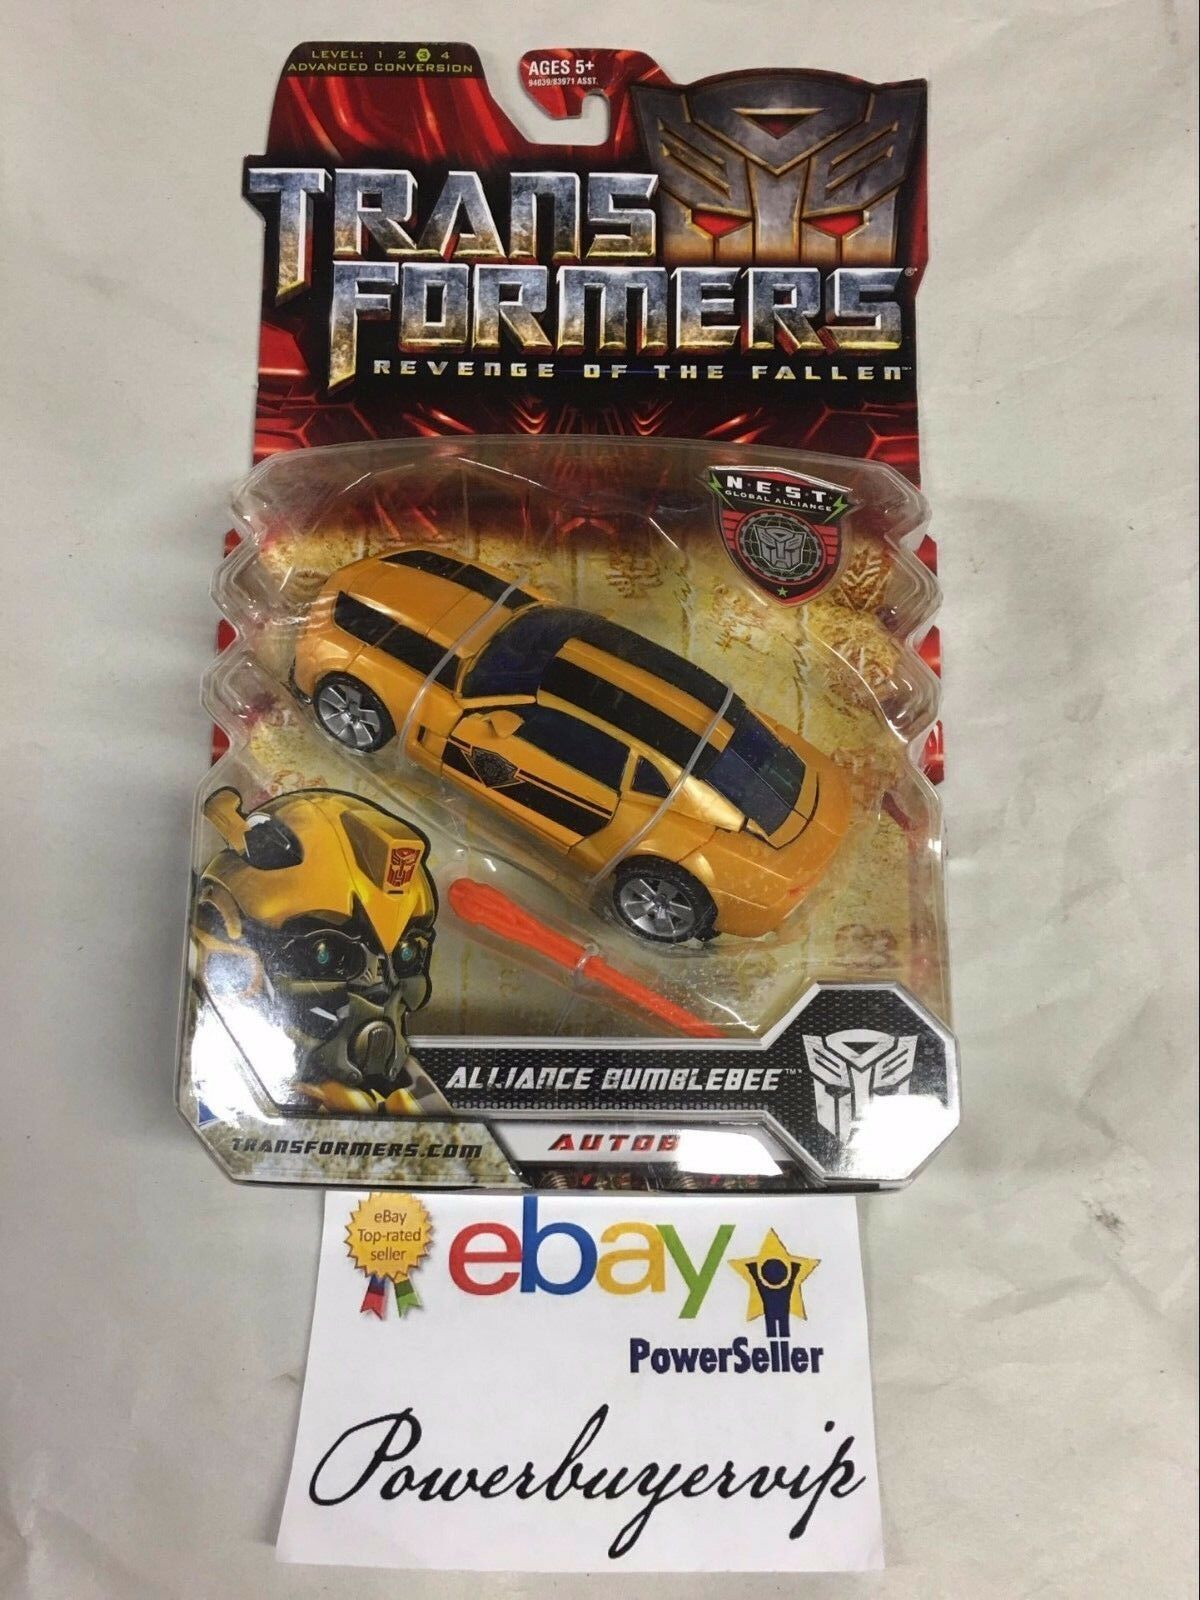 NEW Transformers Movie redF NEST Battle Autobot Deluxe Alliance Bumblebee Figure